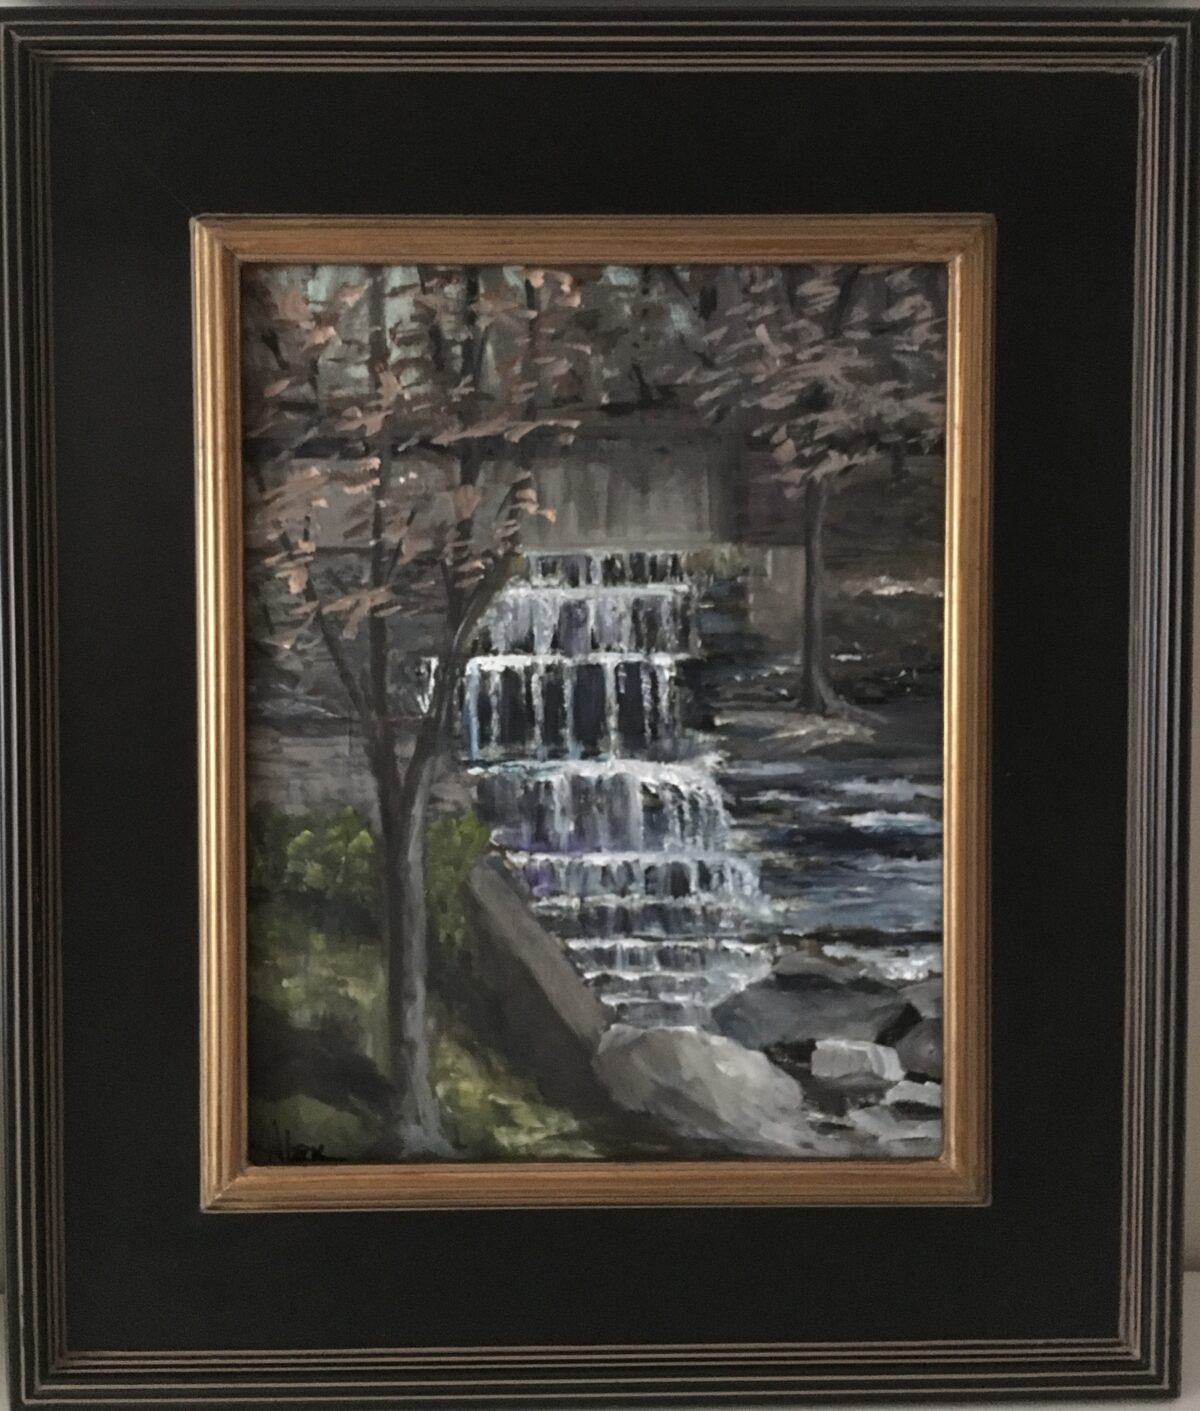 146 - Strahl Lake Falls - 11 x 14 - Landscape - Not Available - $400